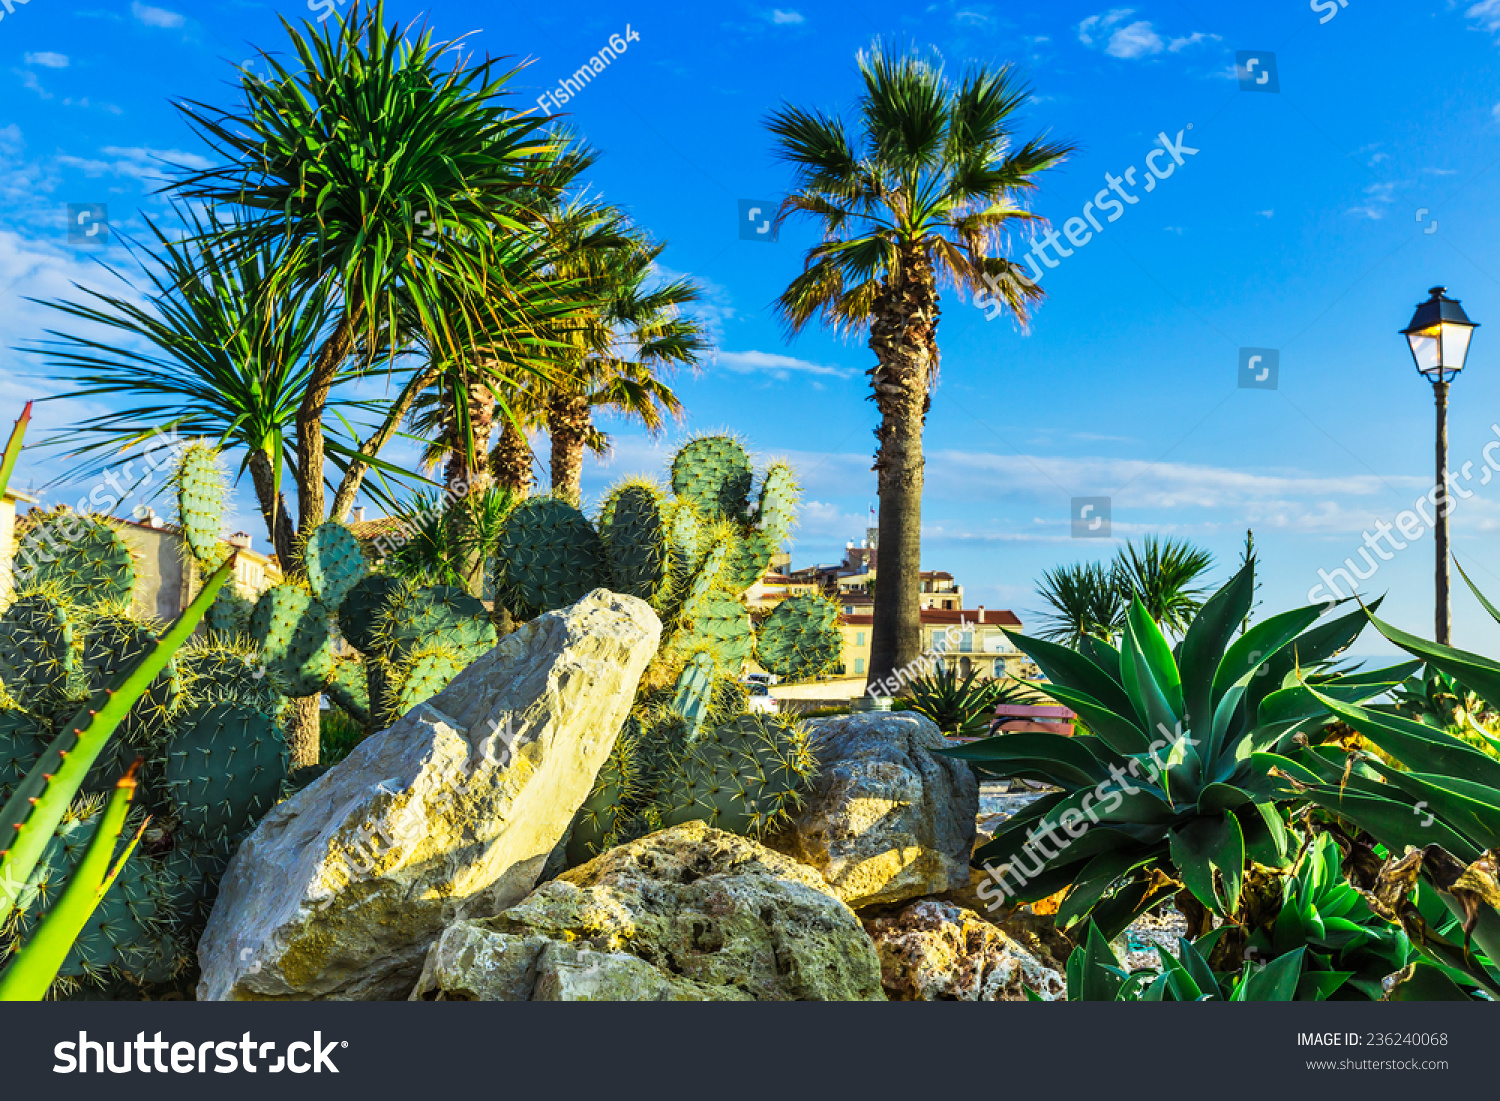 Composition Plants City Antibes South France Stock Photo (Royalty ...